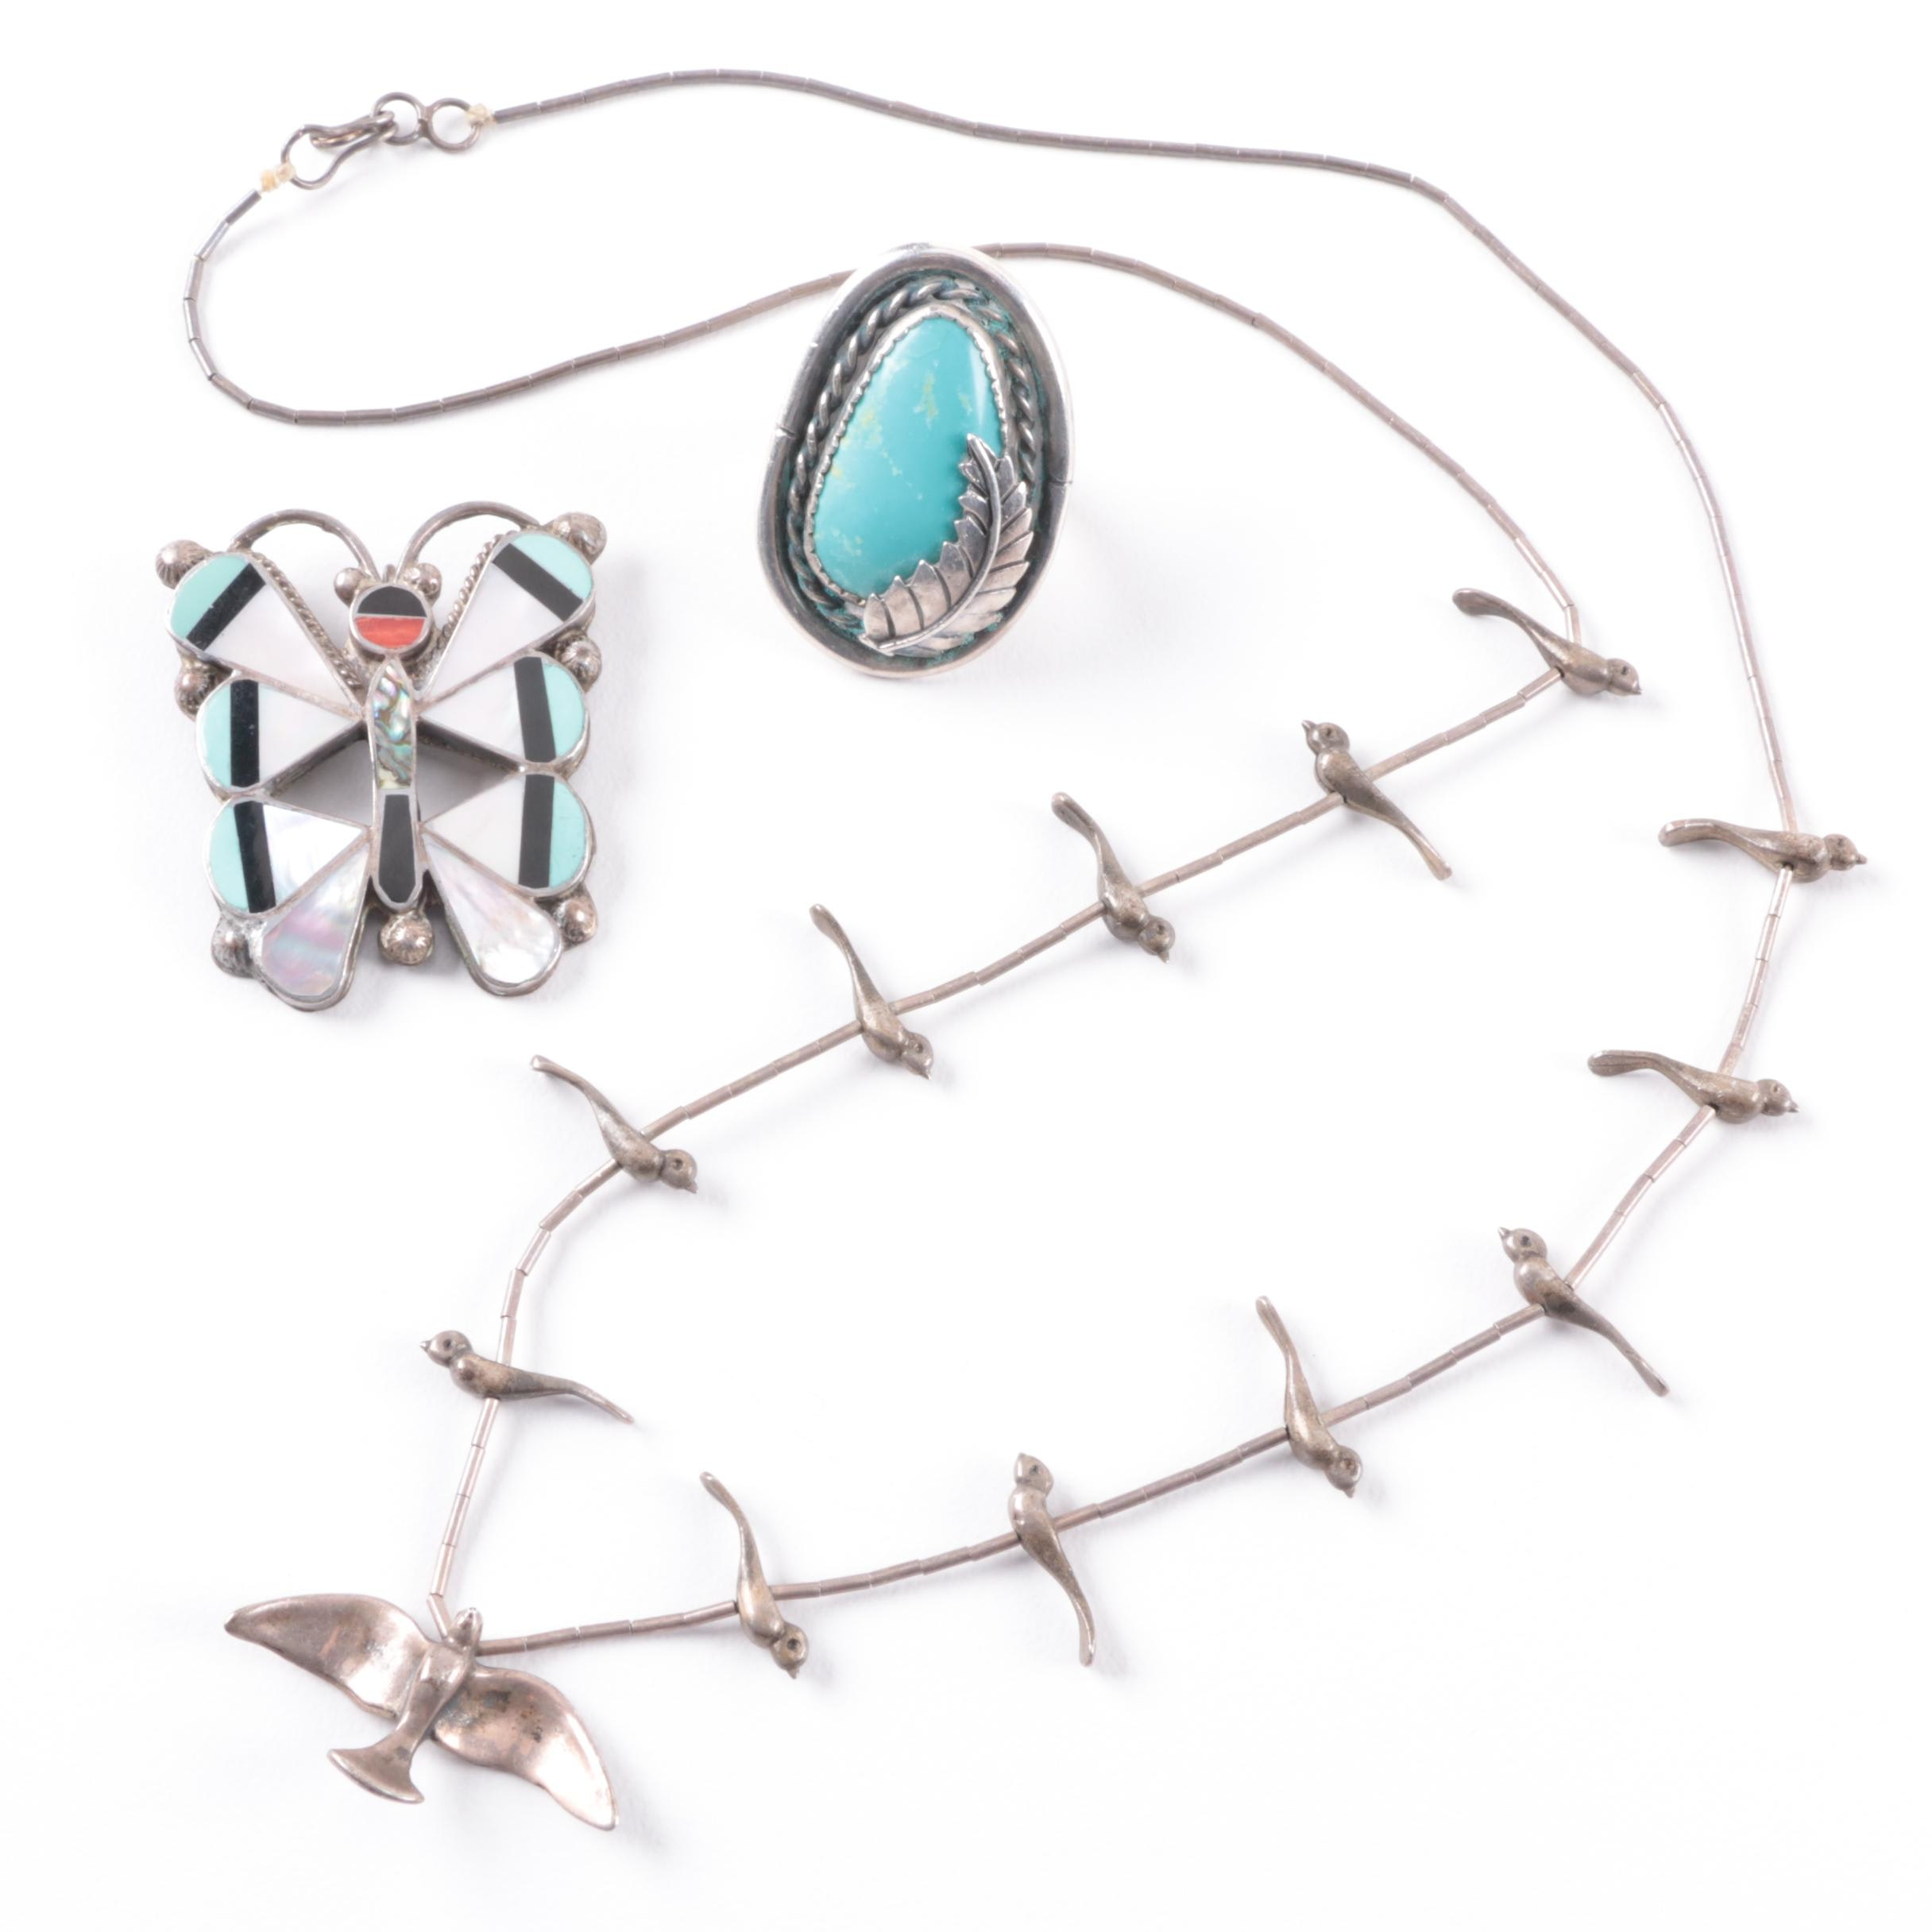 Southwestern Inspired Sterling Silver Jewelry Assortment Including Abalone